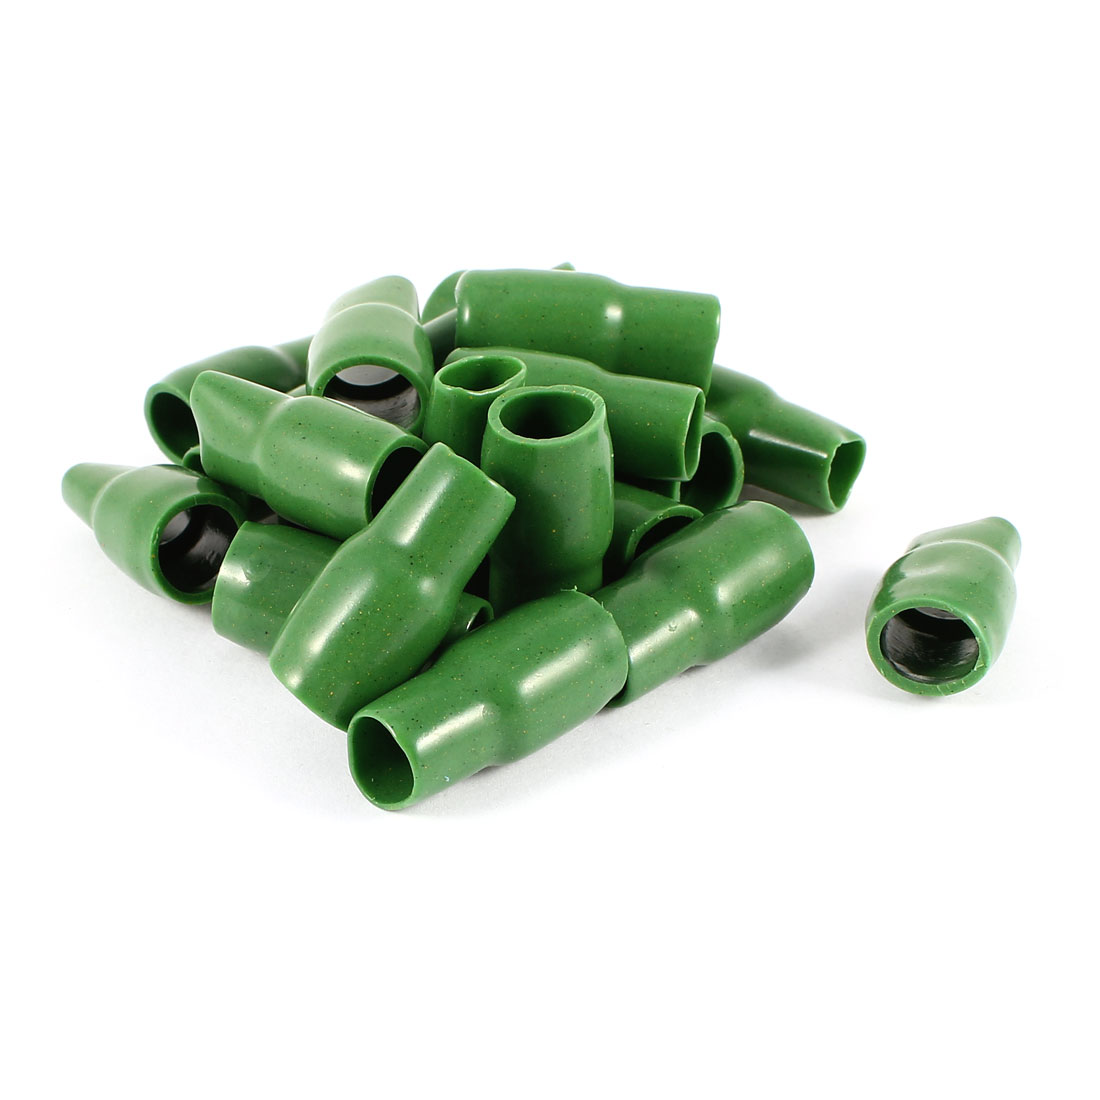 20 Pcs Green Soft PVC Wire V-22 25mm2 Crimp Terminal End Insulated Sleeves Caps Cover